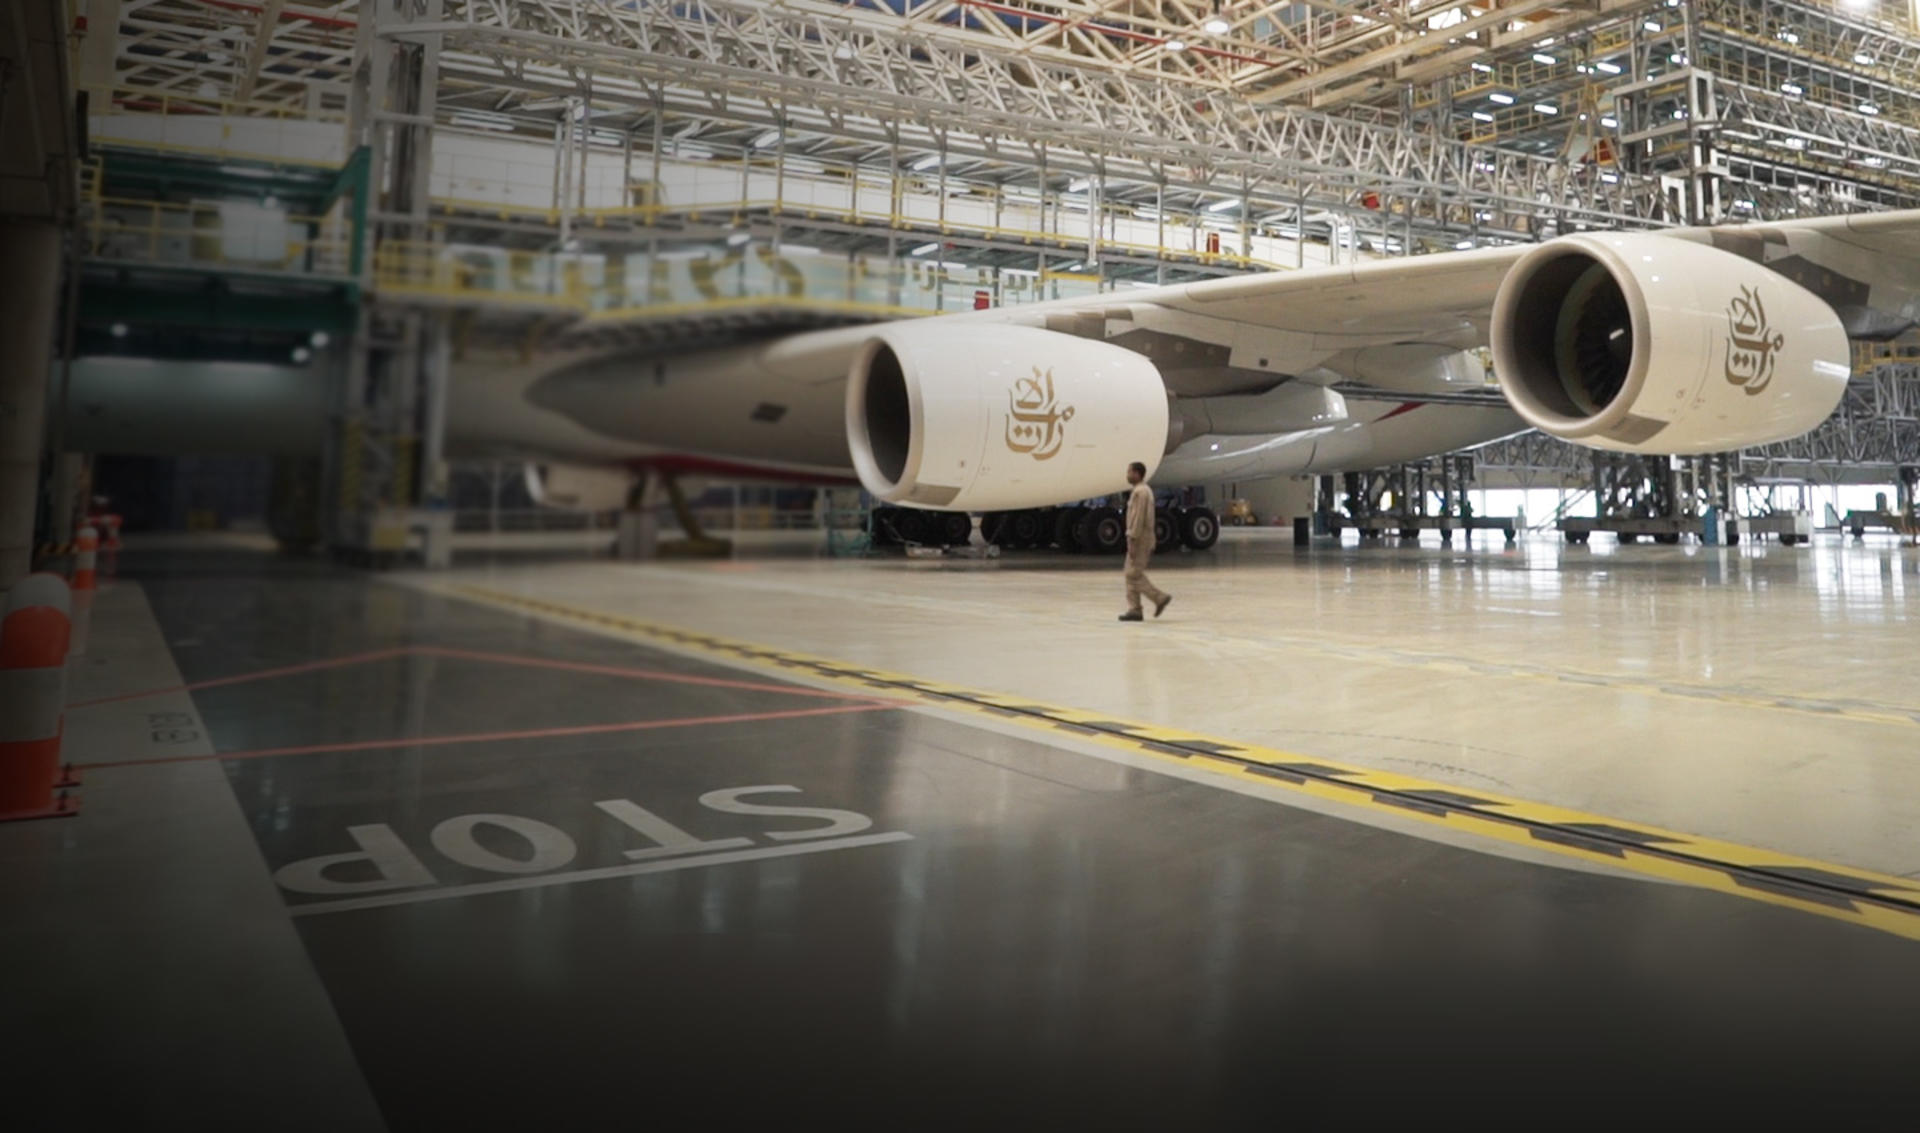 Emirates airline explores lighter weight SLS printing for in-cabin parts